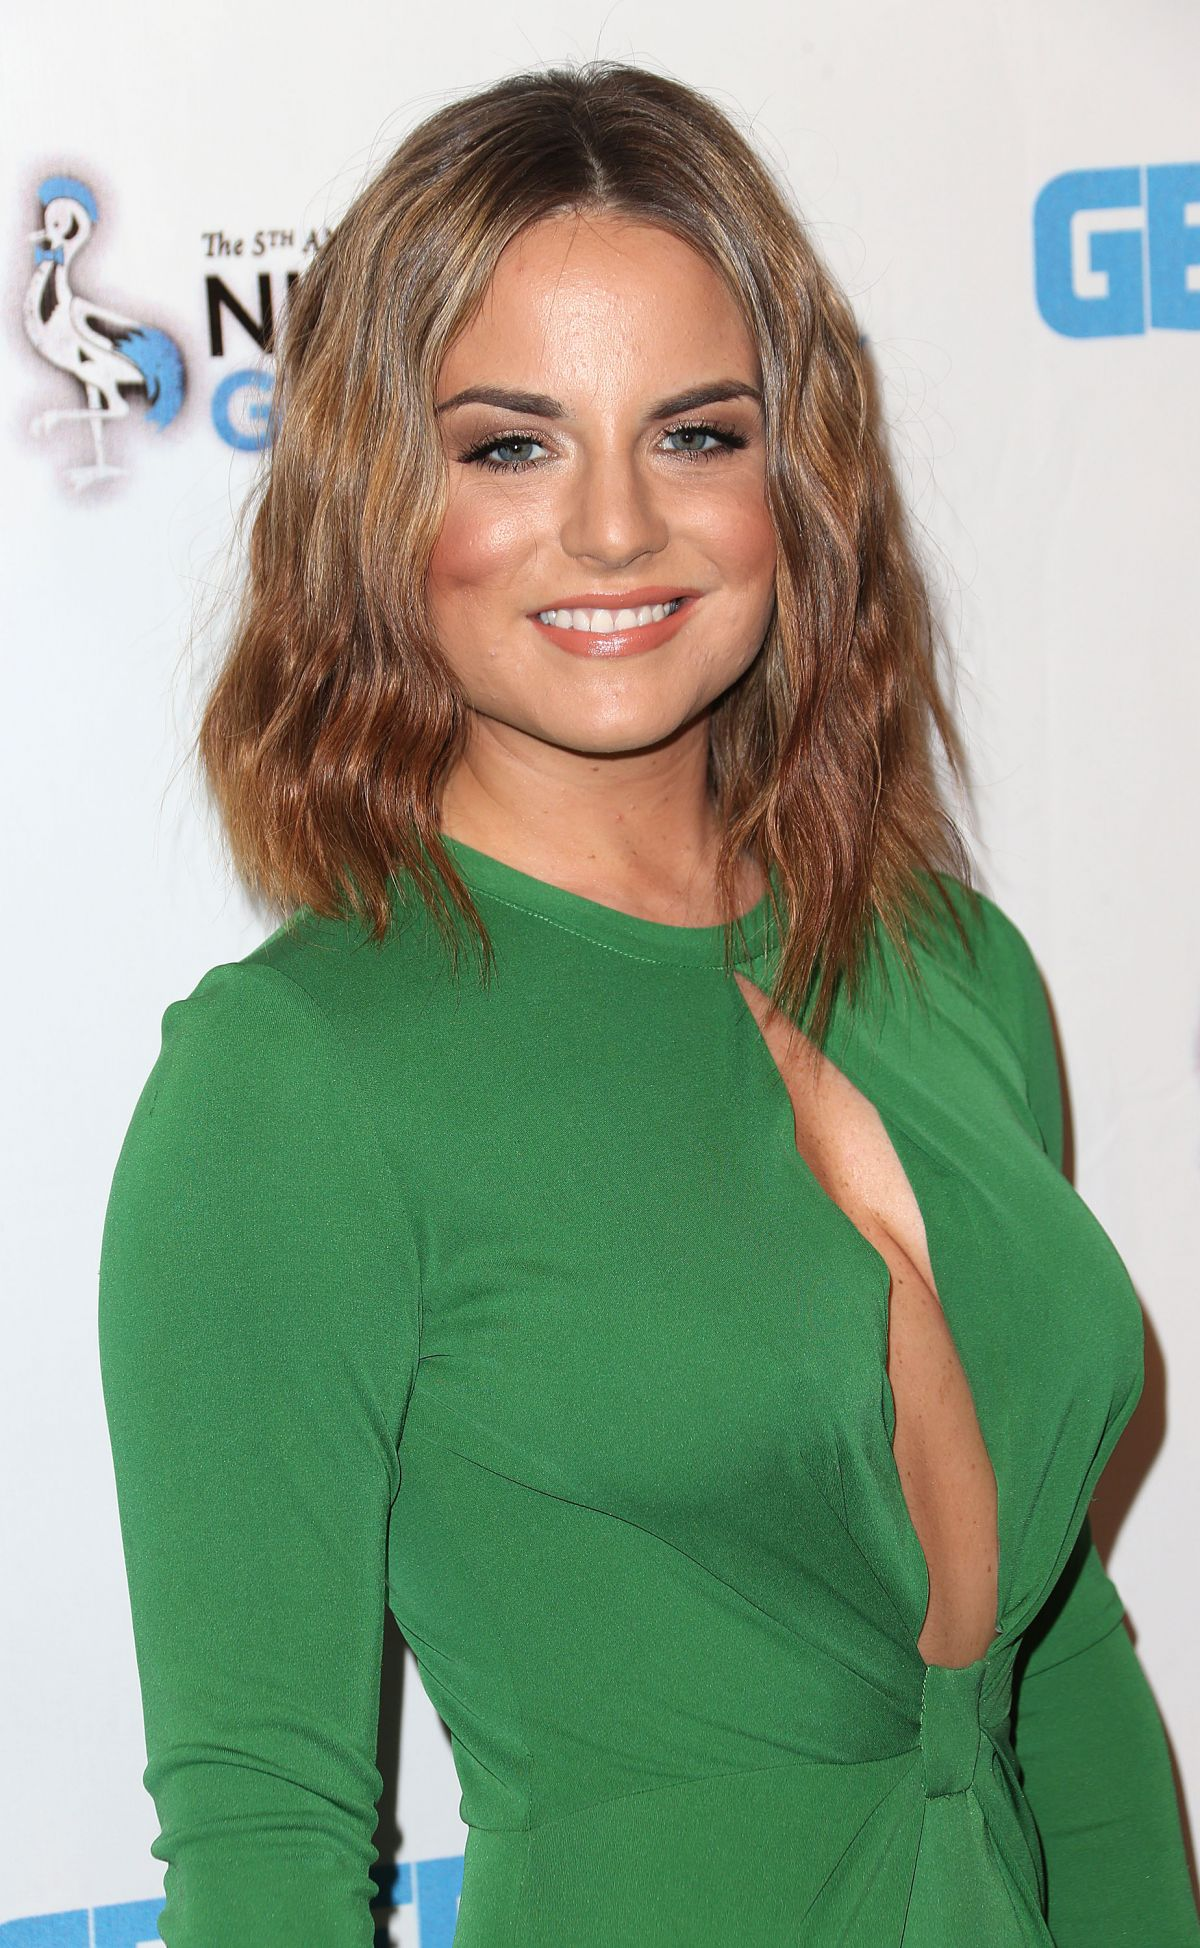 JoJo Is Finally Suing Her Record Label, So Maybe There's ...